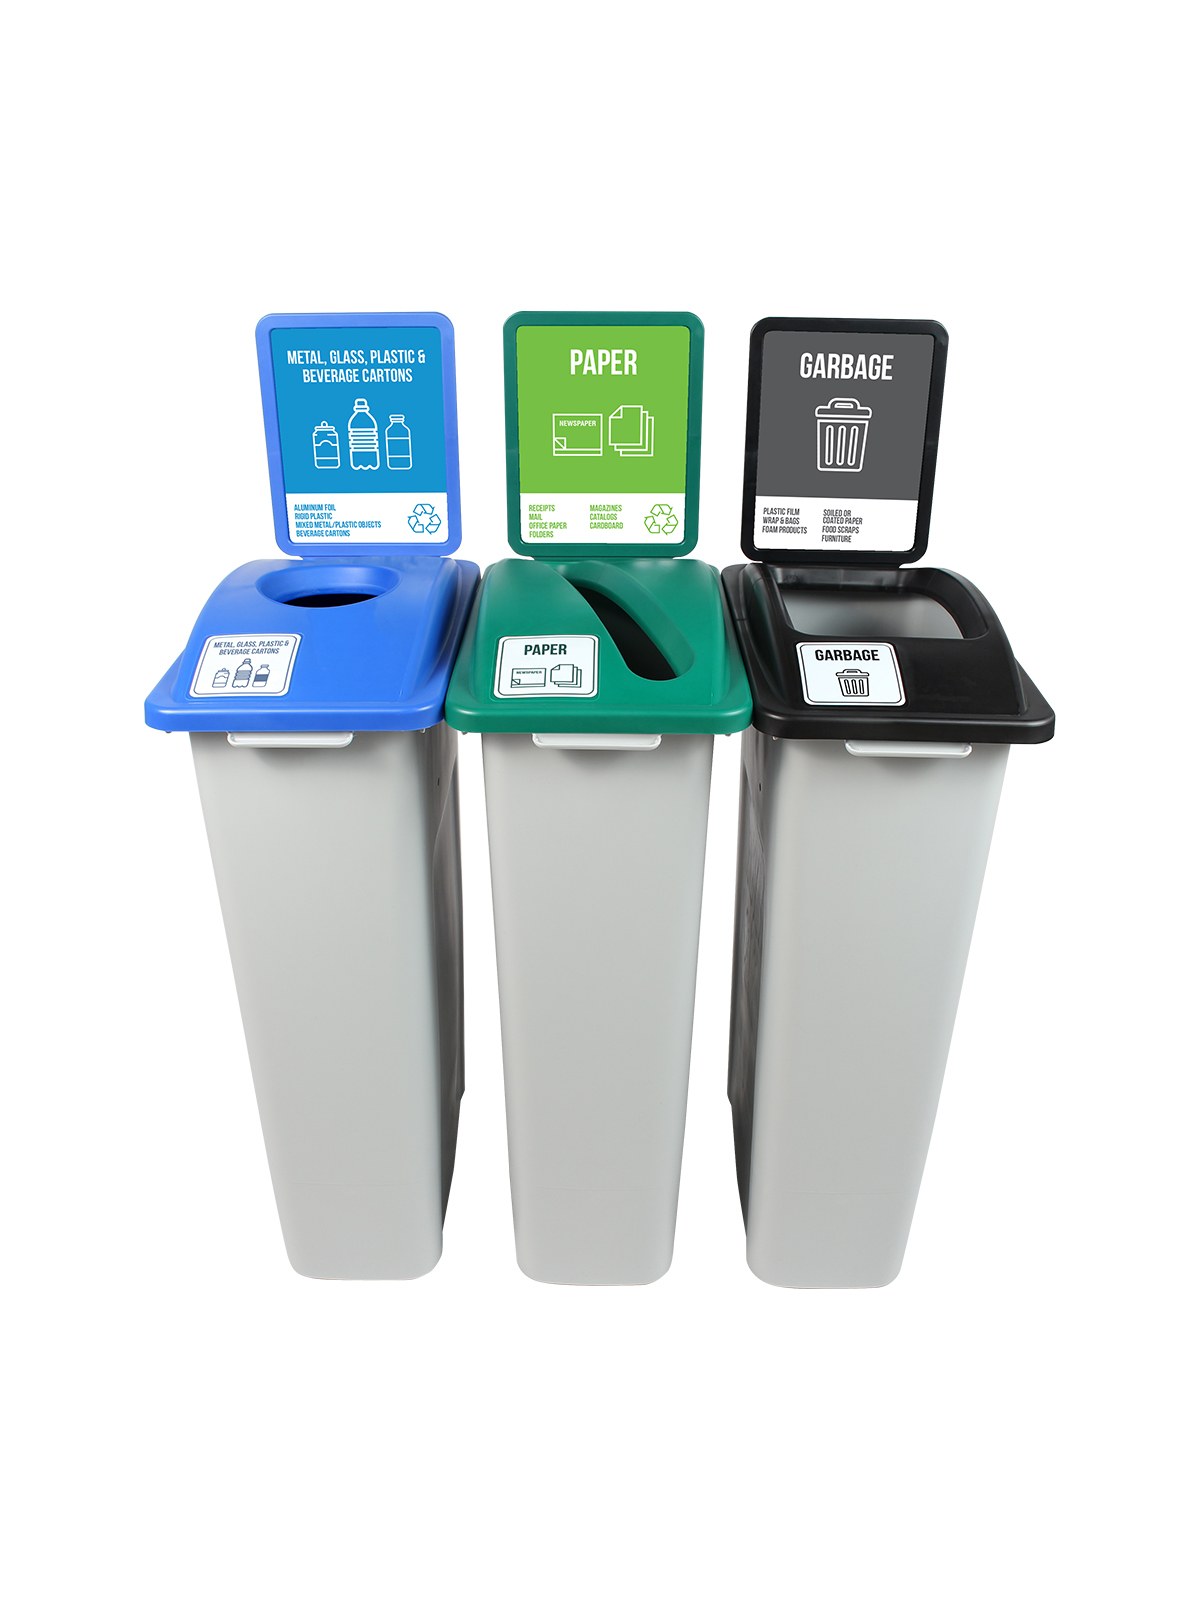 WASTE WATCHER - Triple - Nyc Compliant - Metal, Glass, Plastic & Beverage Containers-Paper-Garbage - Circle-Slot-Full - Grey-Blue-Green-Black